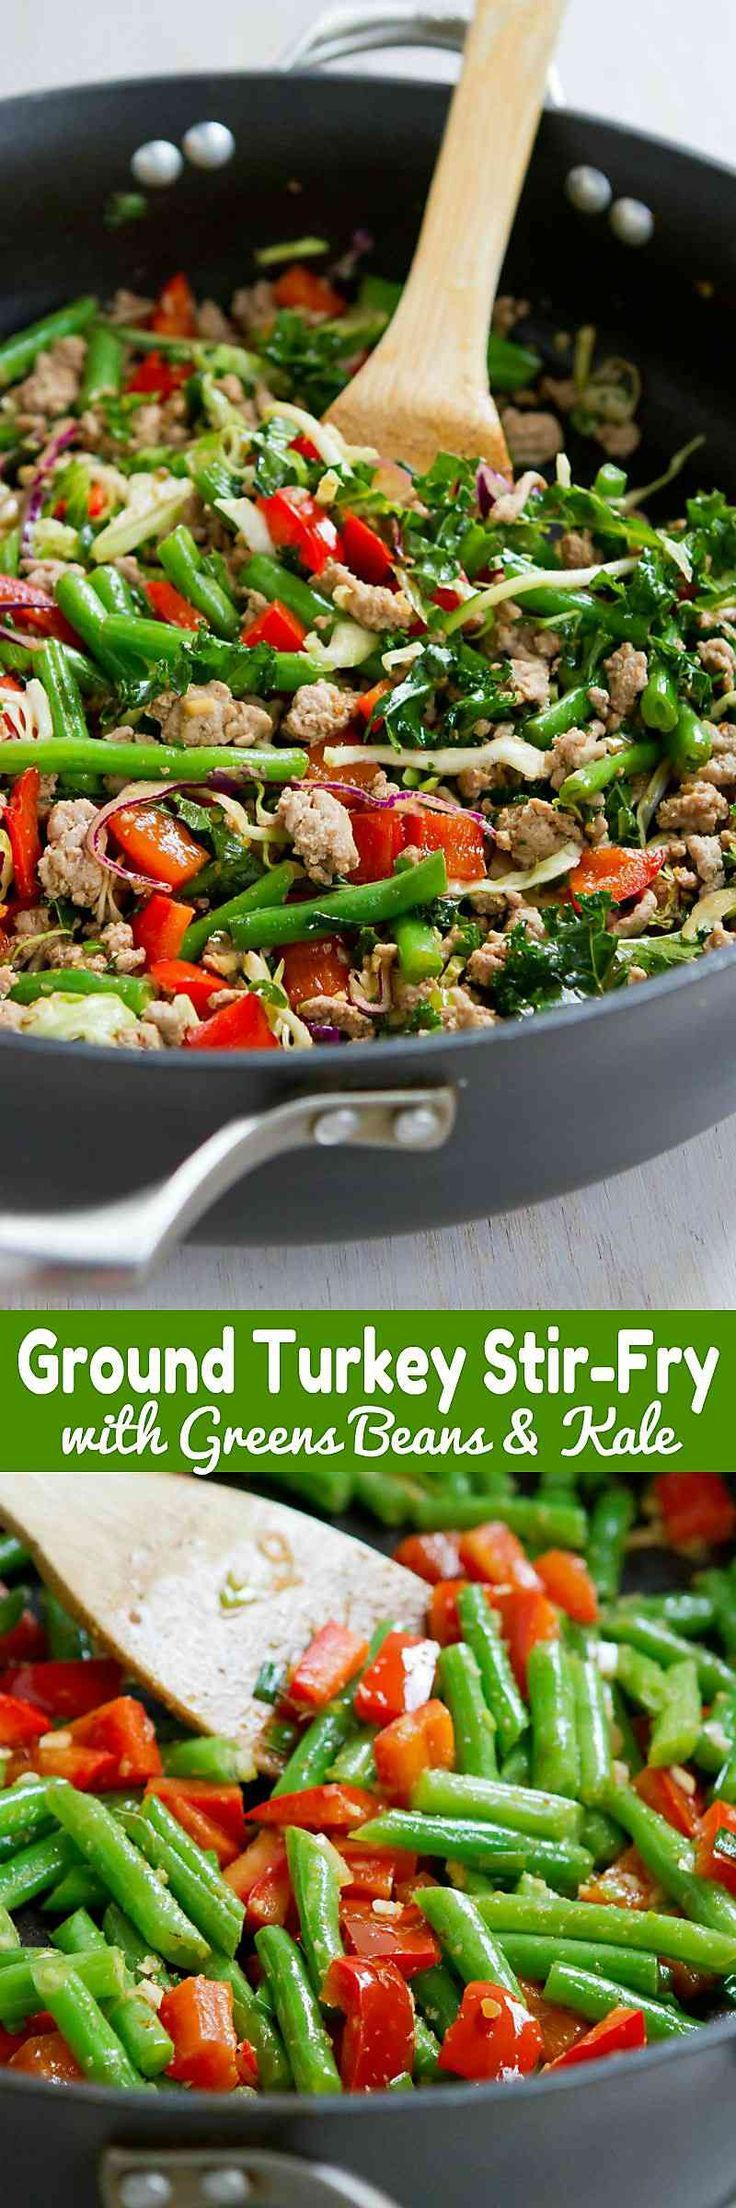 Ground Turkey Stir Fry With Greens Beans Kale 20 Minute Meal Recipe Turkey Stir Fry Healthy Healthy Recipes